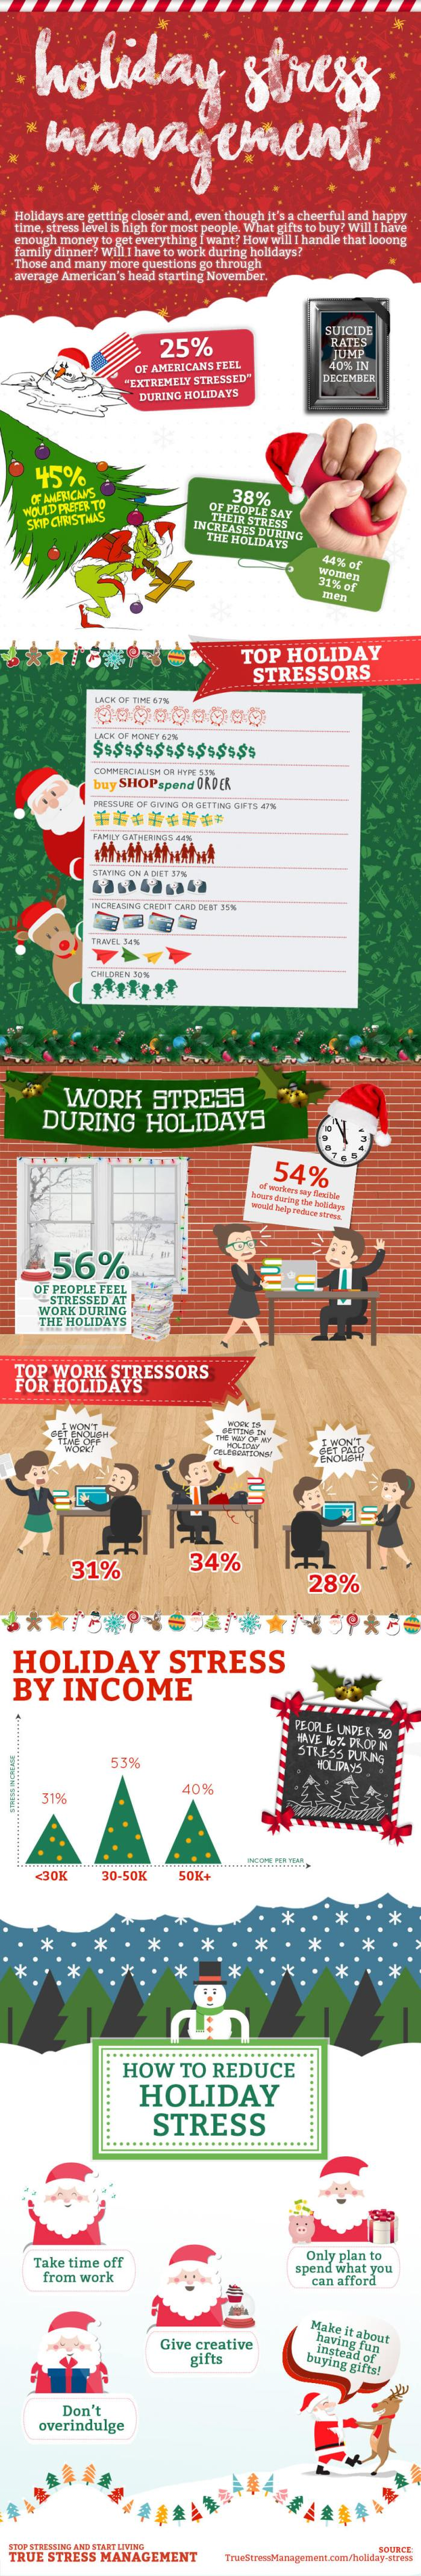 holiday stress management infographic